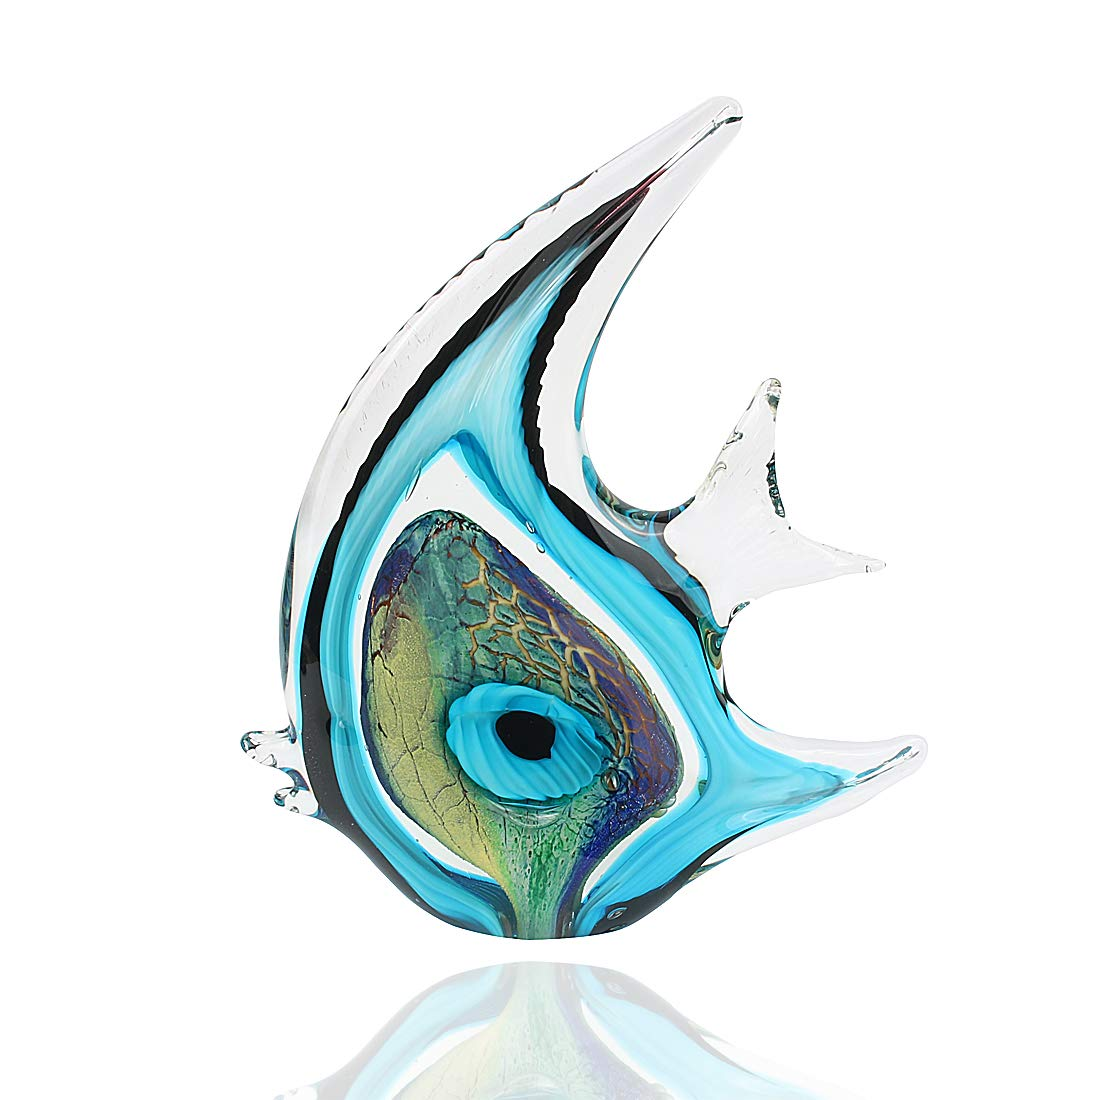 Hophen Tropical Angel Fish Art Glass Blown Handmade Sea Animal Figurine Sculpture Home Decor Collectible Statue Paper Weight Gift Ornament Big Blue